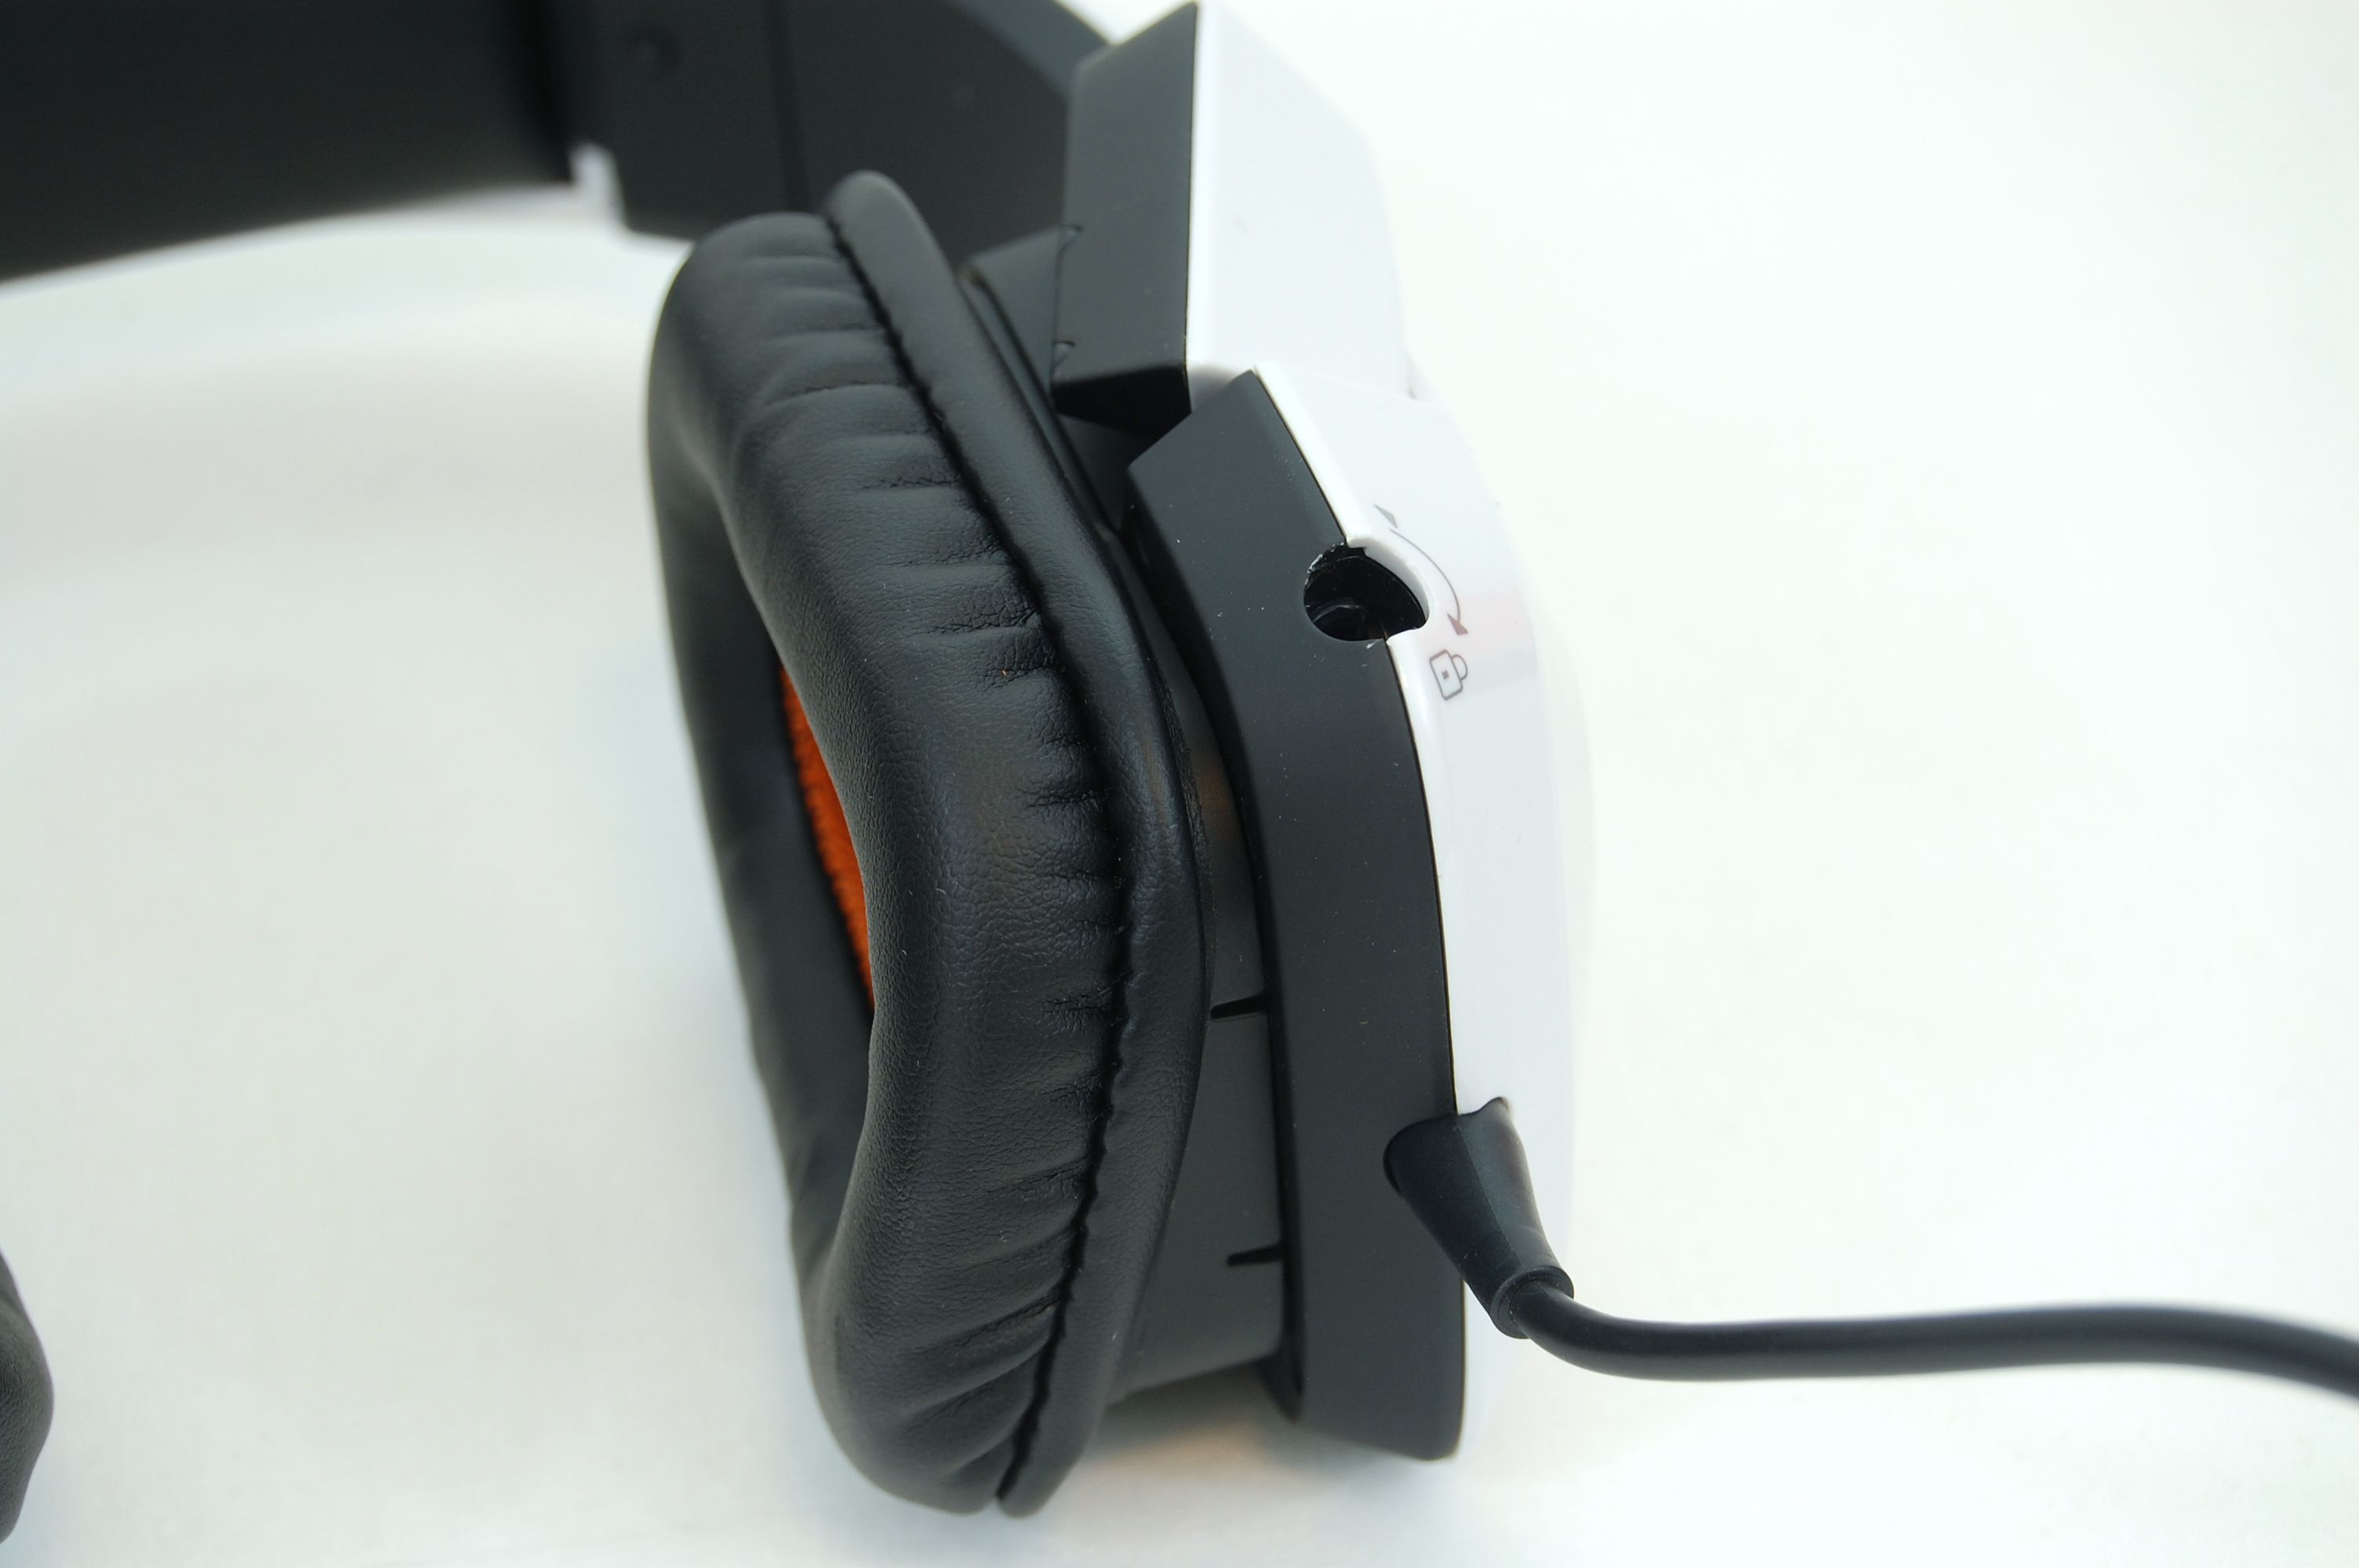 Tritton by MadCatz Pro+ 5.1 Surround Gaming Headset Review - Earcup